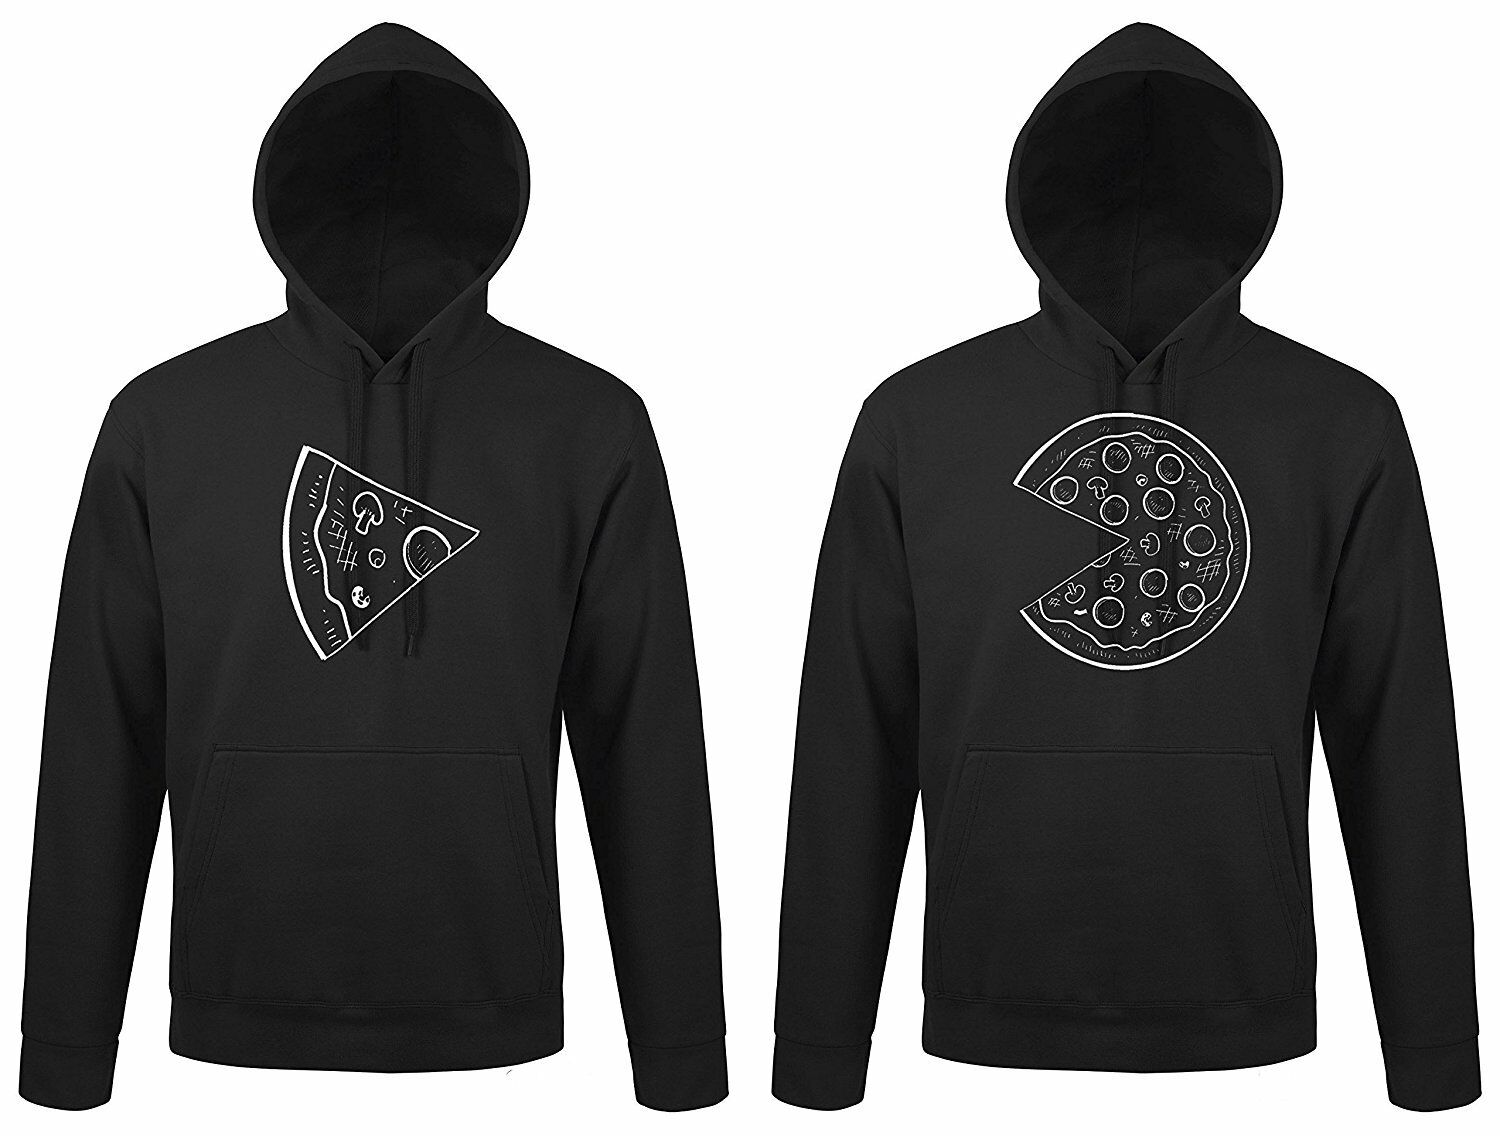 Partner Pärchen Hoodies Pullover